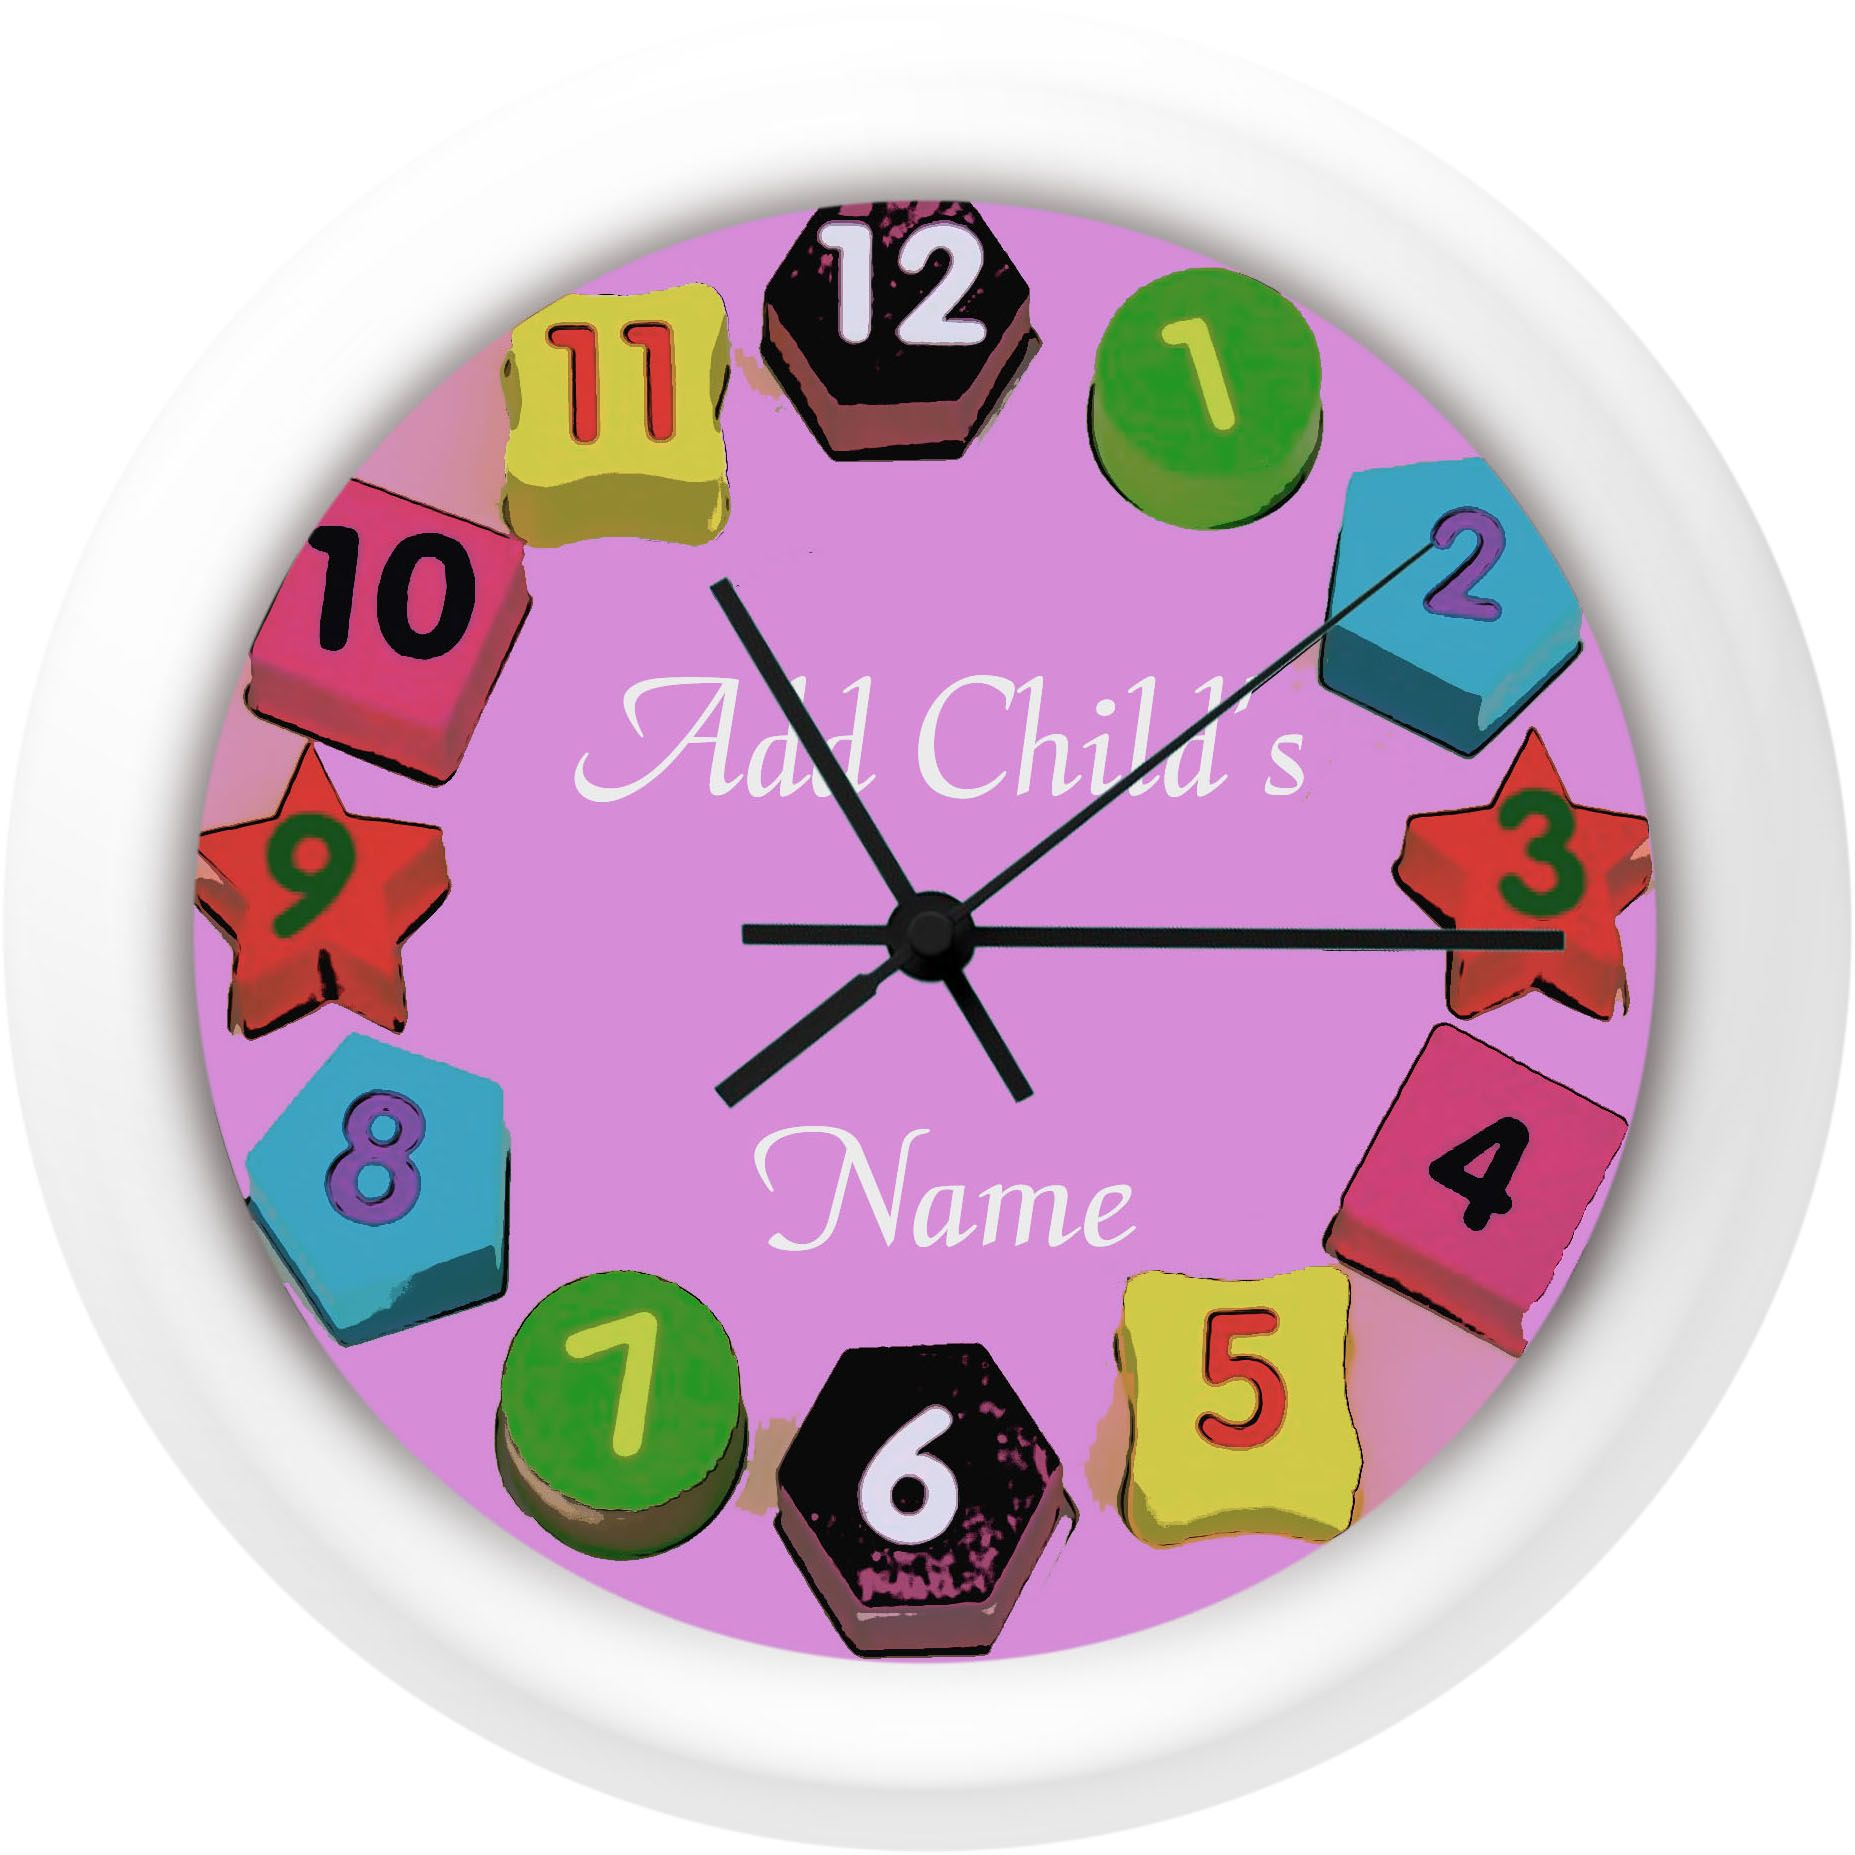 Personalized childrens photo wall clocks free printable pics and personalized childrens photo wall clocks free printable pics and graphics to aid in your original amipublicfo Gallery